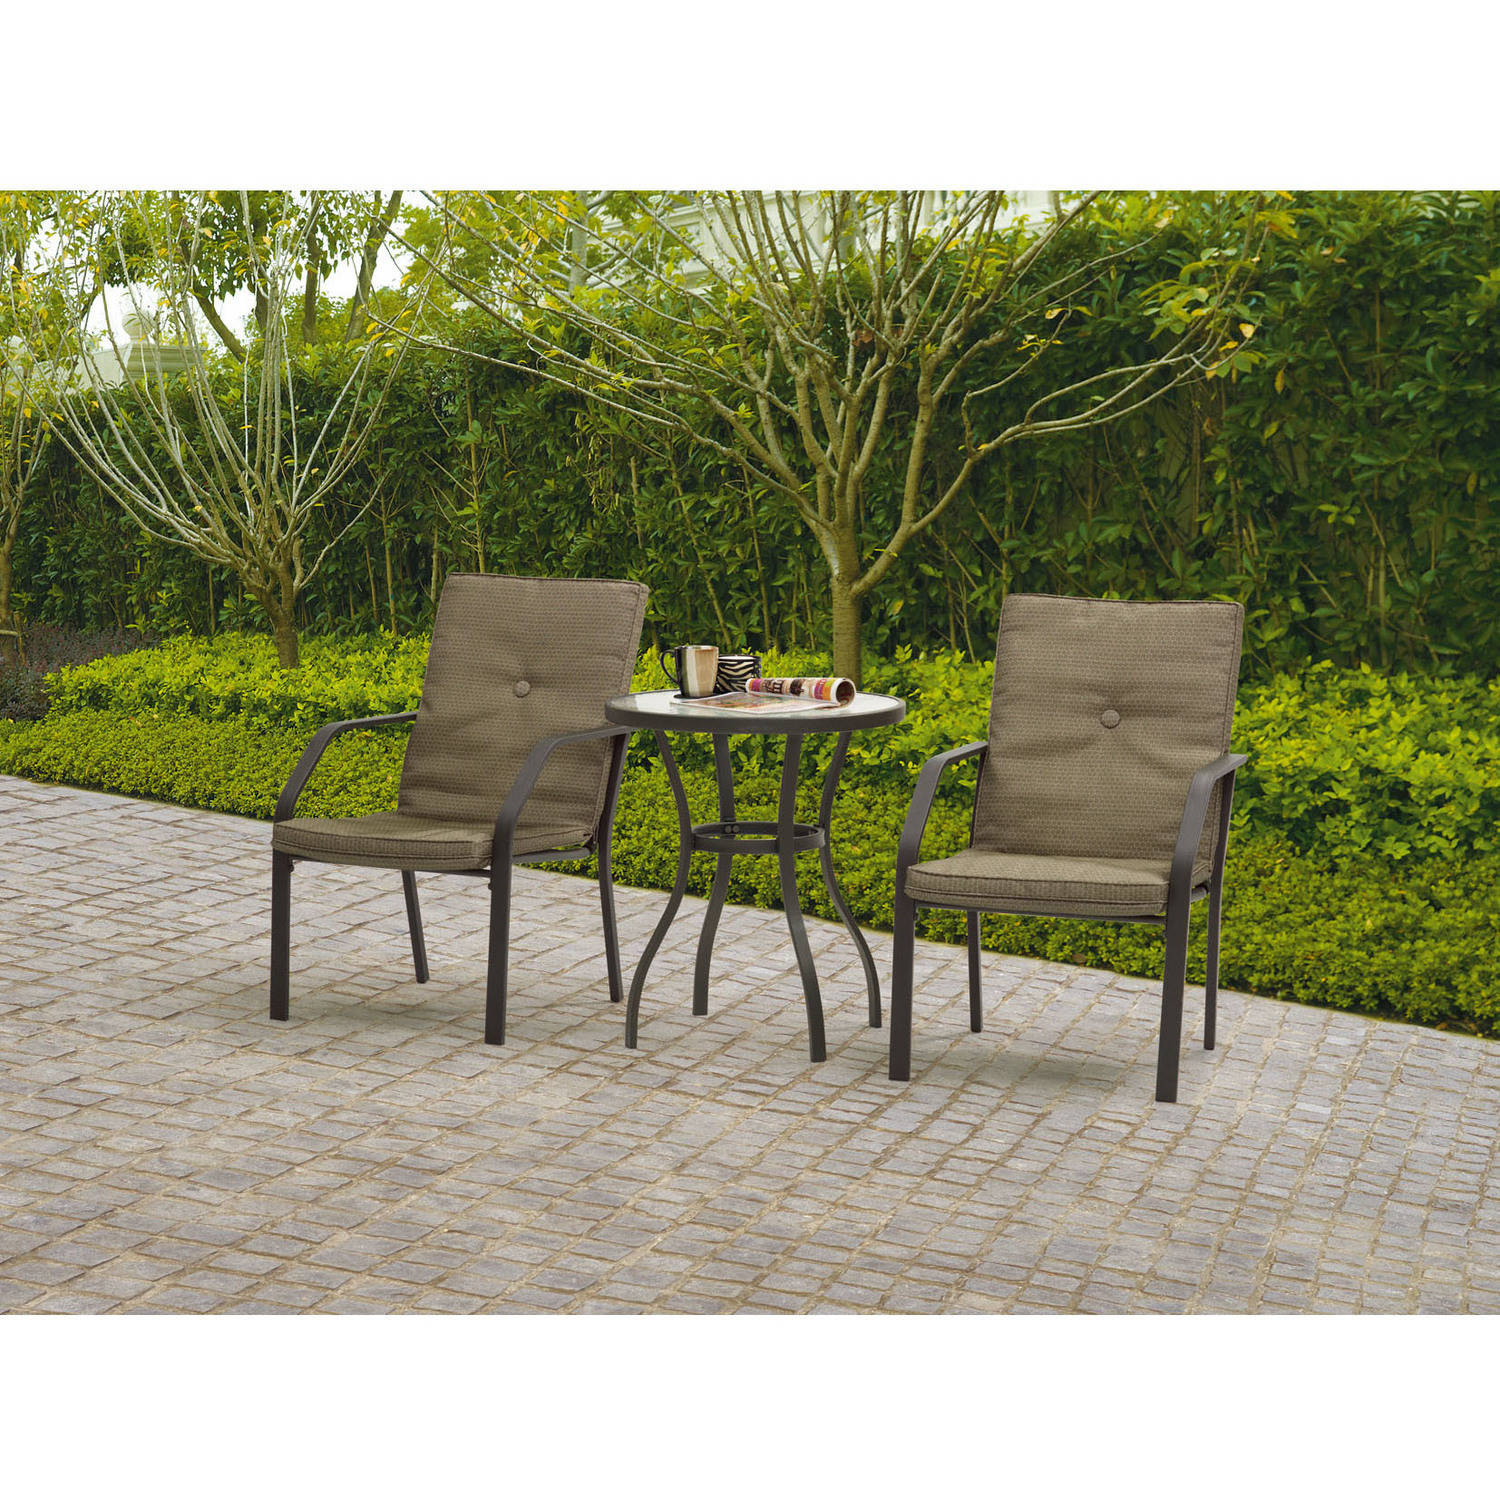 - Mainstays Spring Creek 3-Piece Patio Bistro Set, Tan - Walmart.com